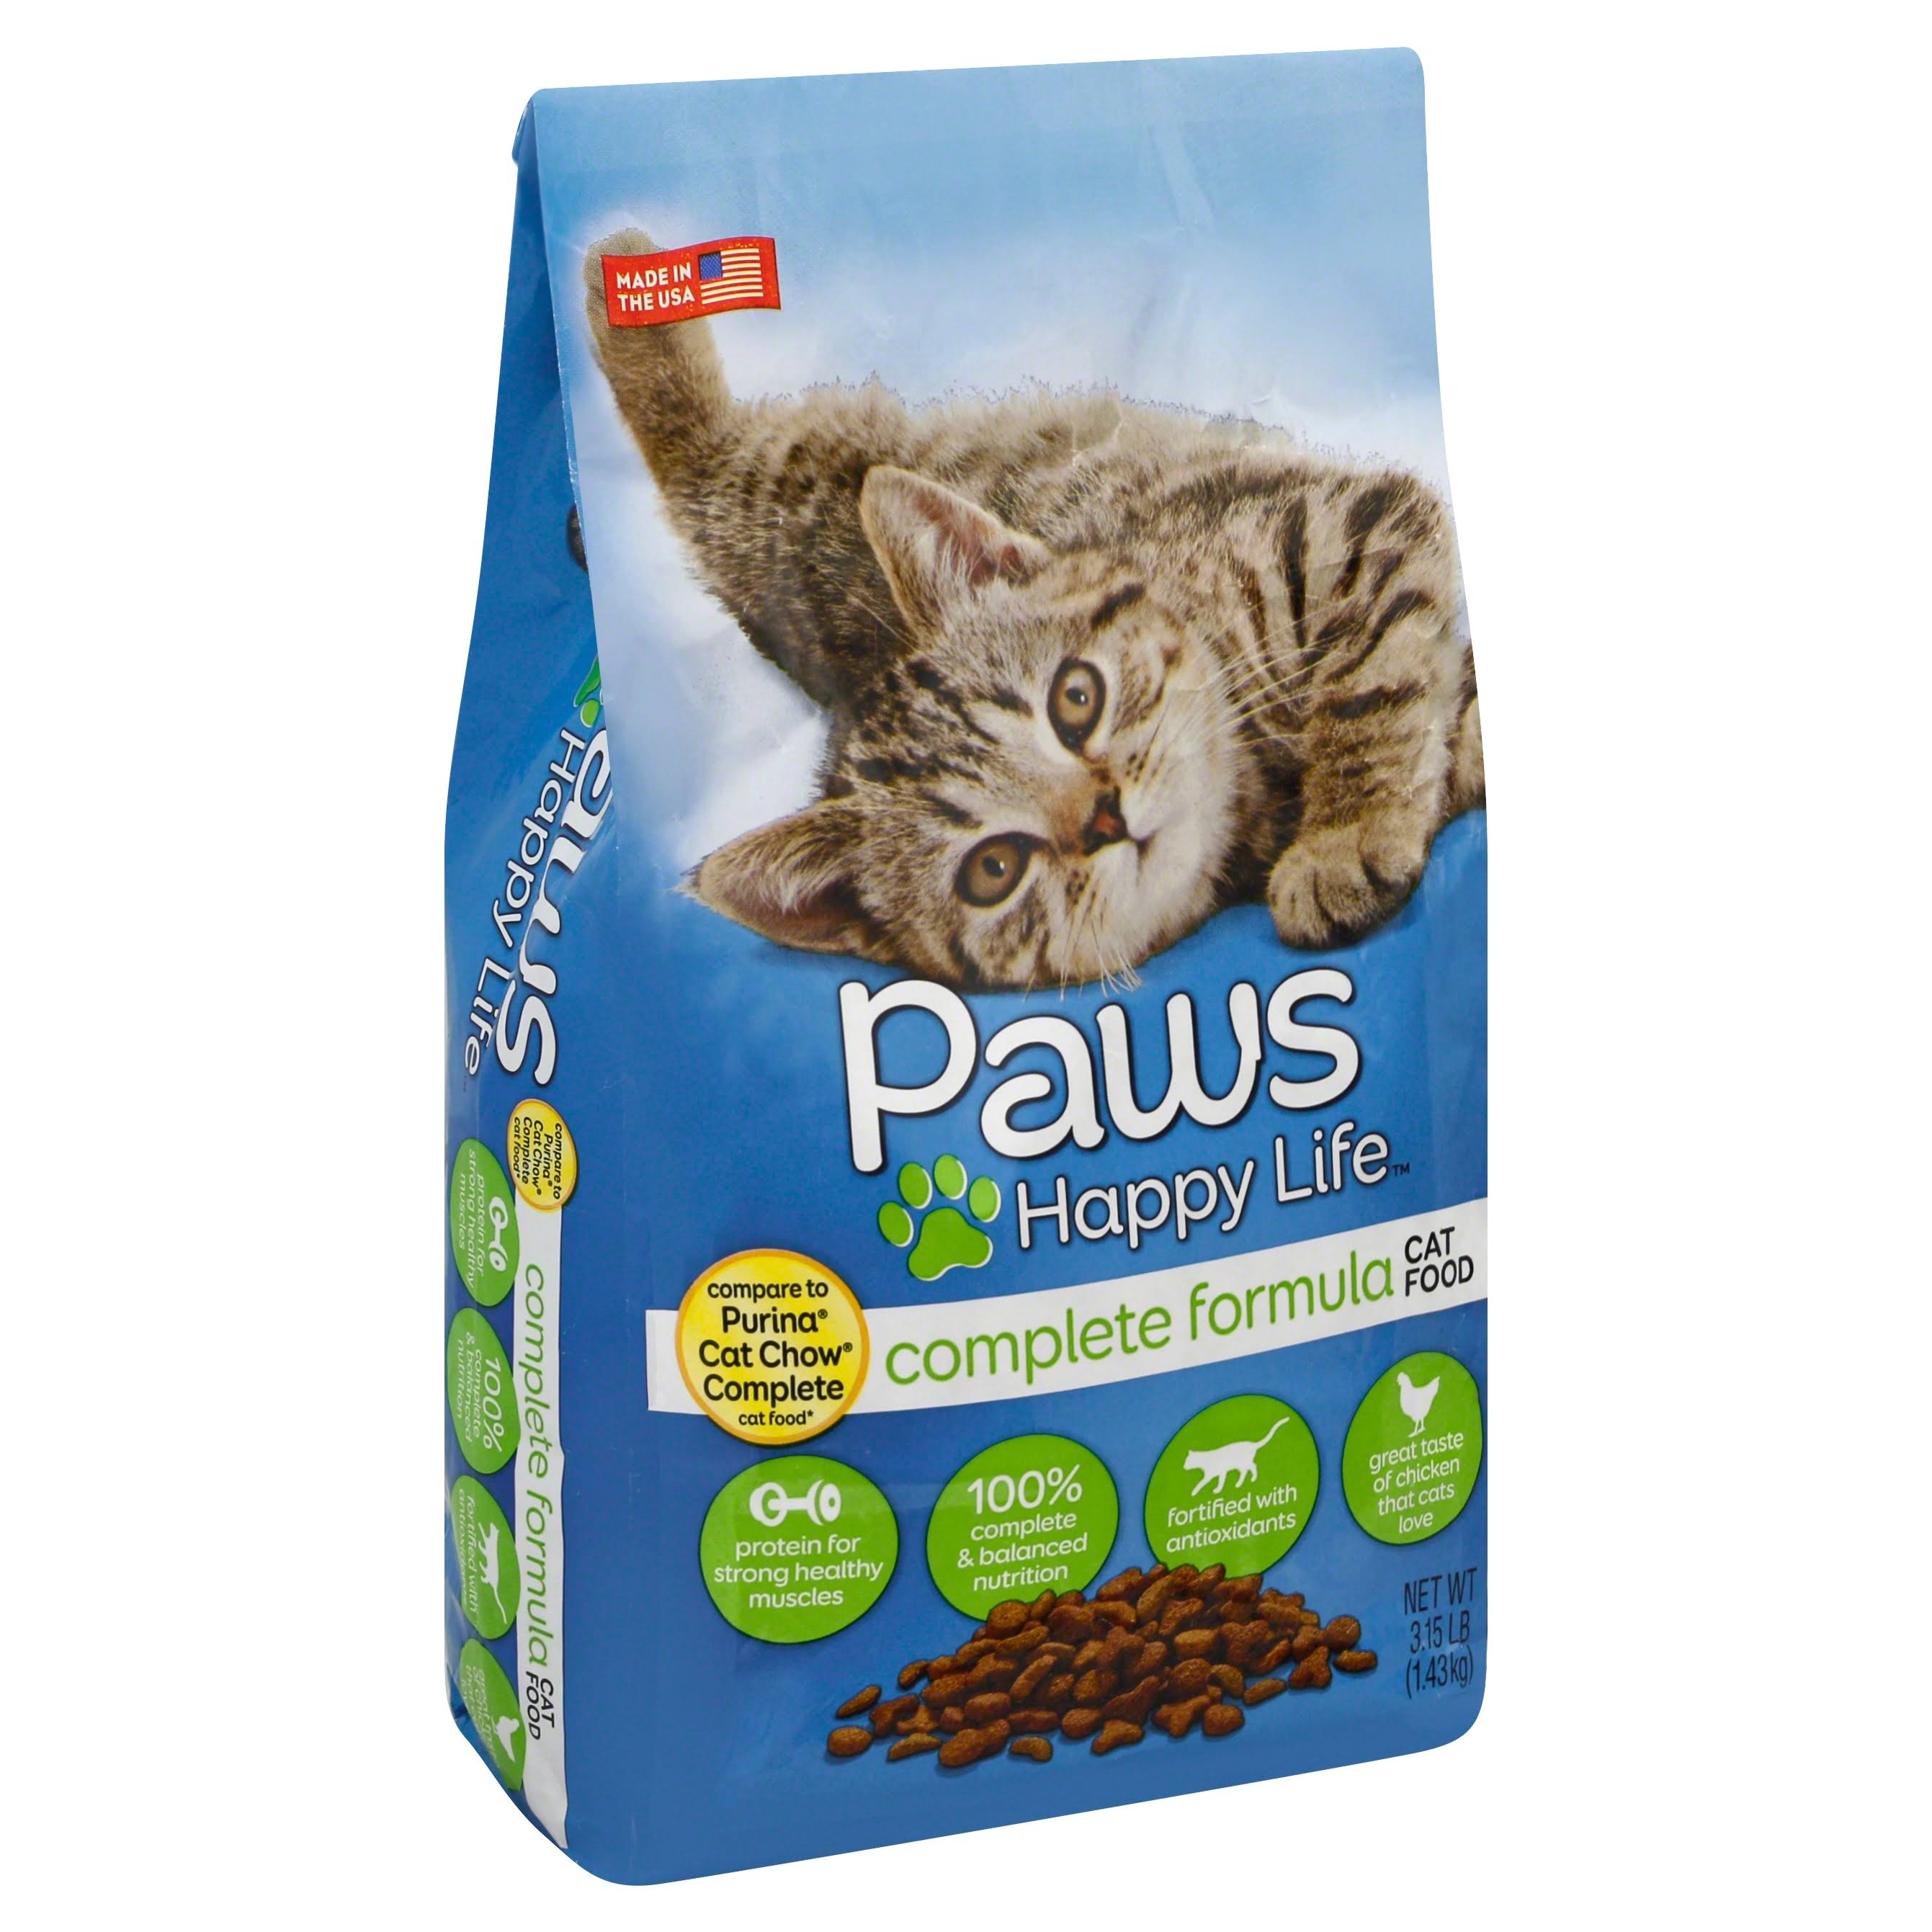 Paws Happy Life Cat Food, Complete Formula - 3.15 lb